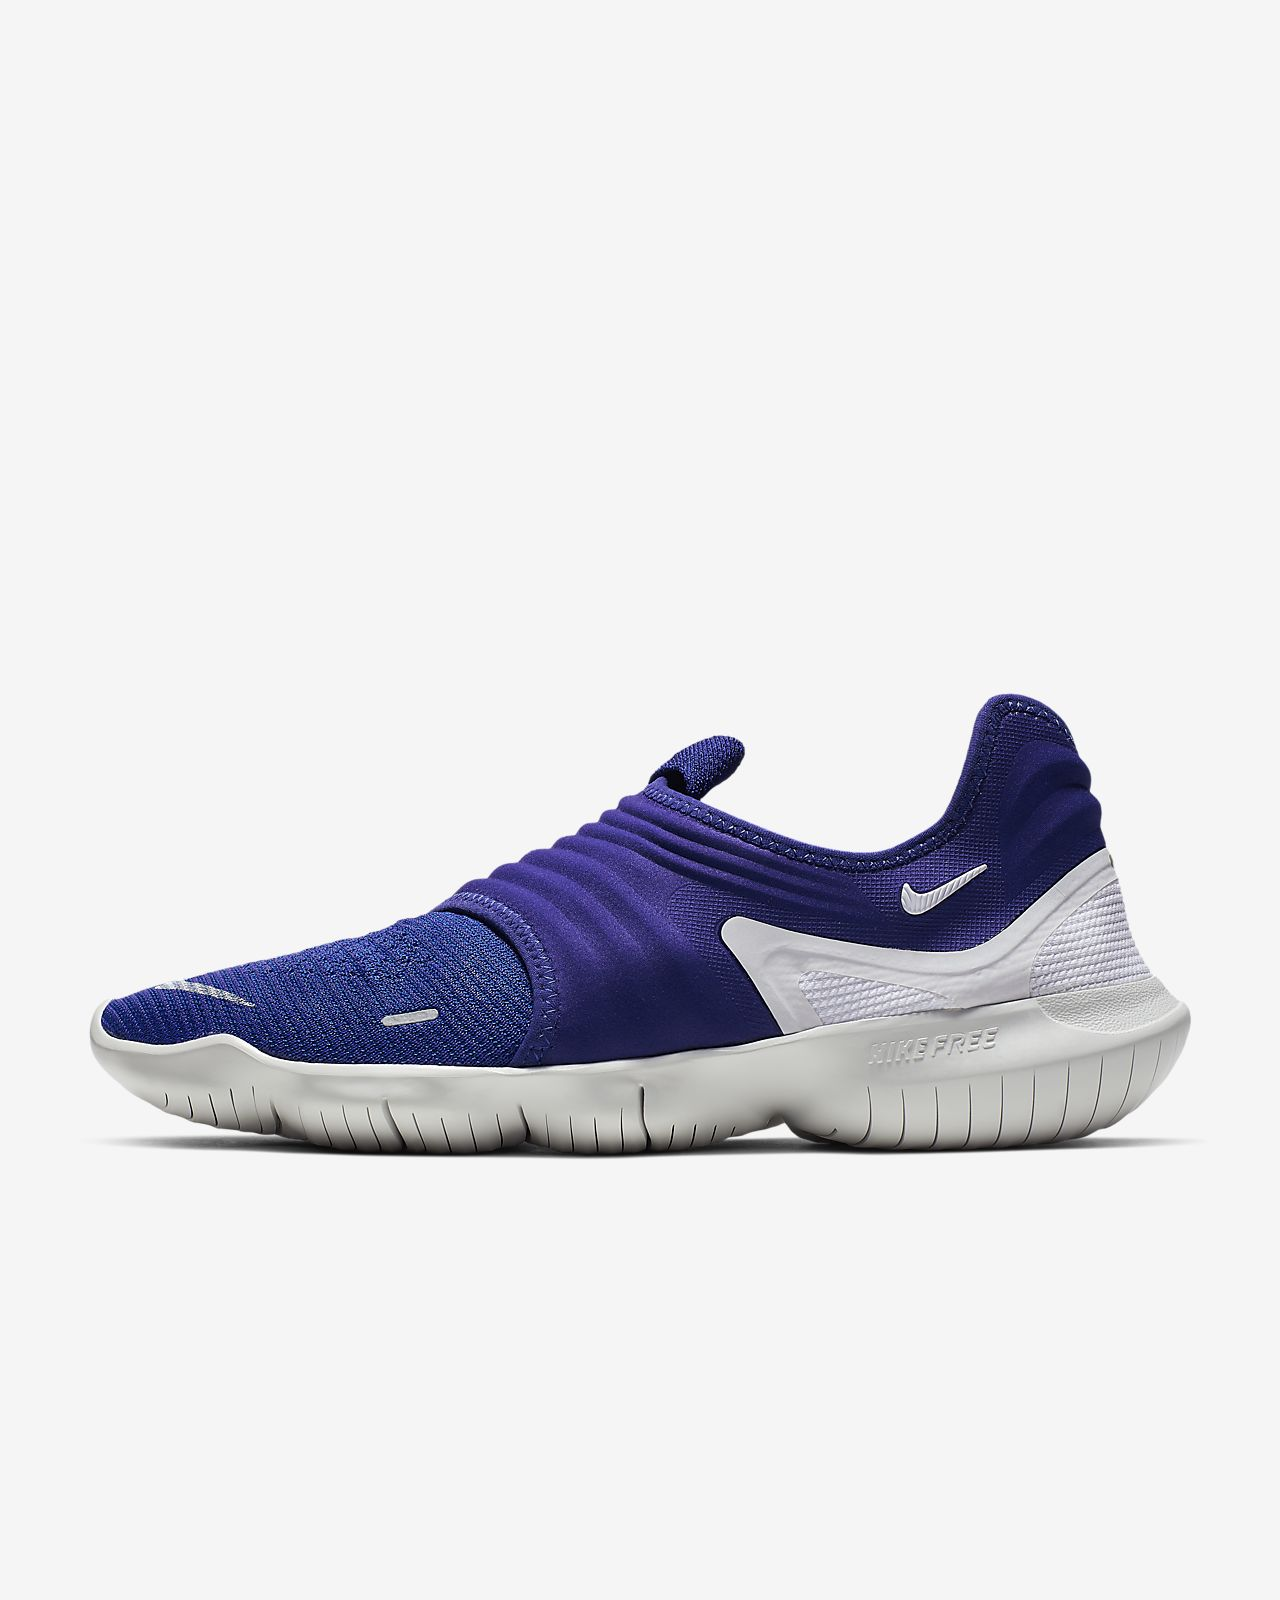 uk availability 88aec 501d5 ... Chaussure de running Nike Free RN Flyknit 3.0 pour Homme